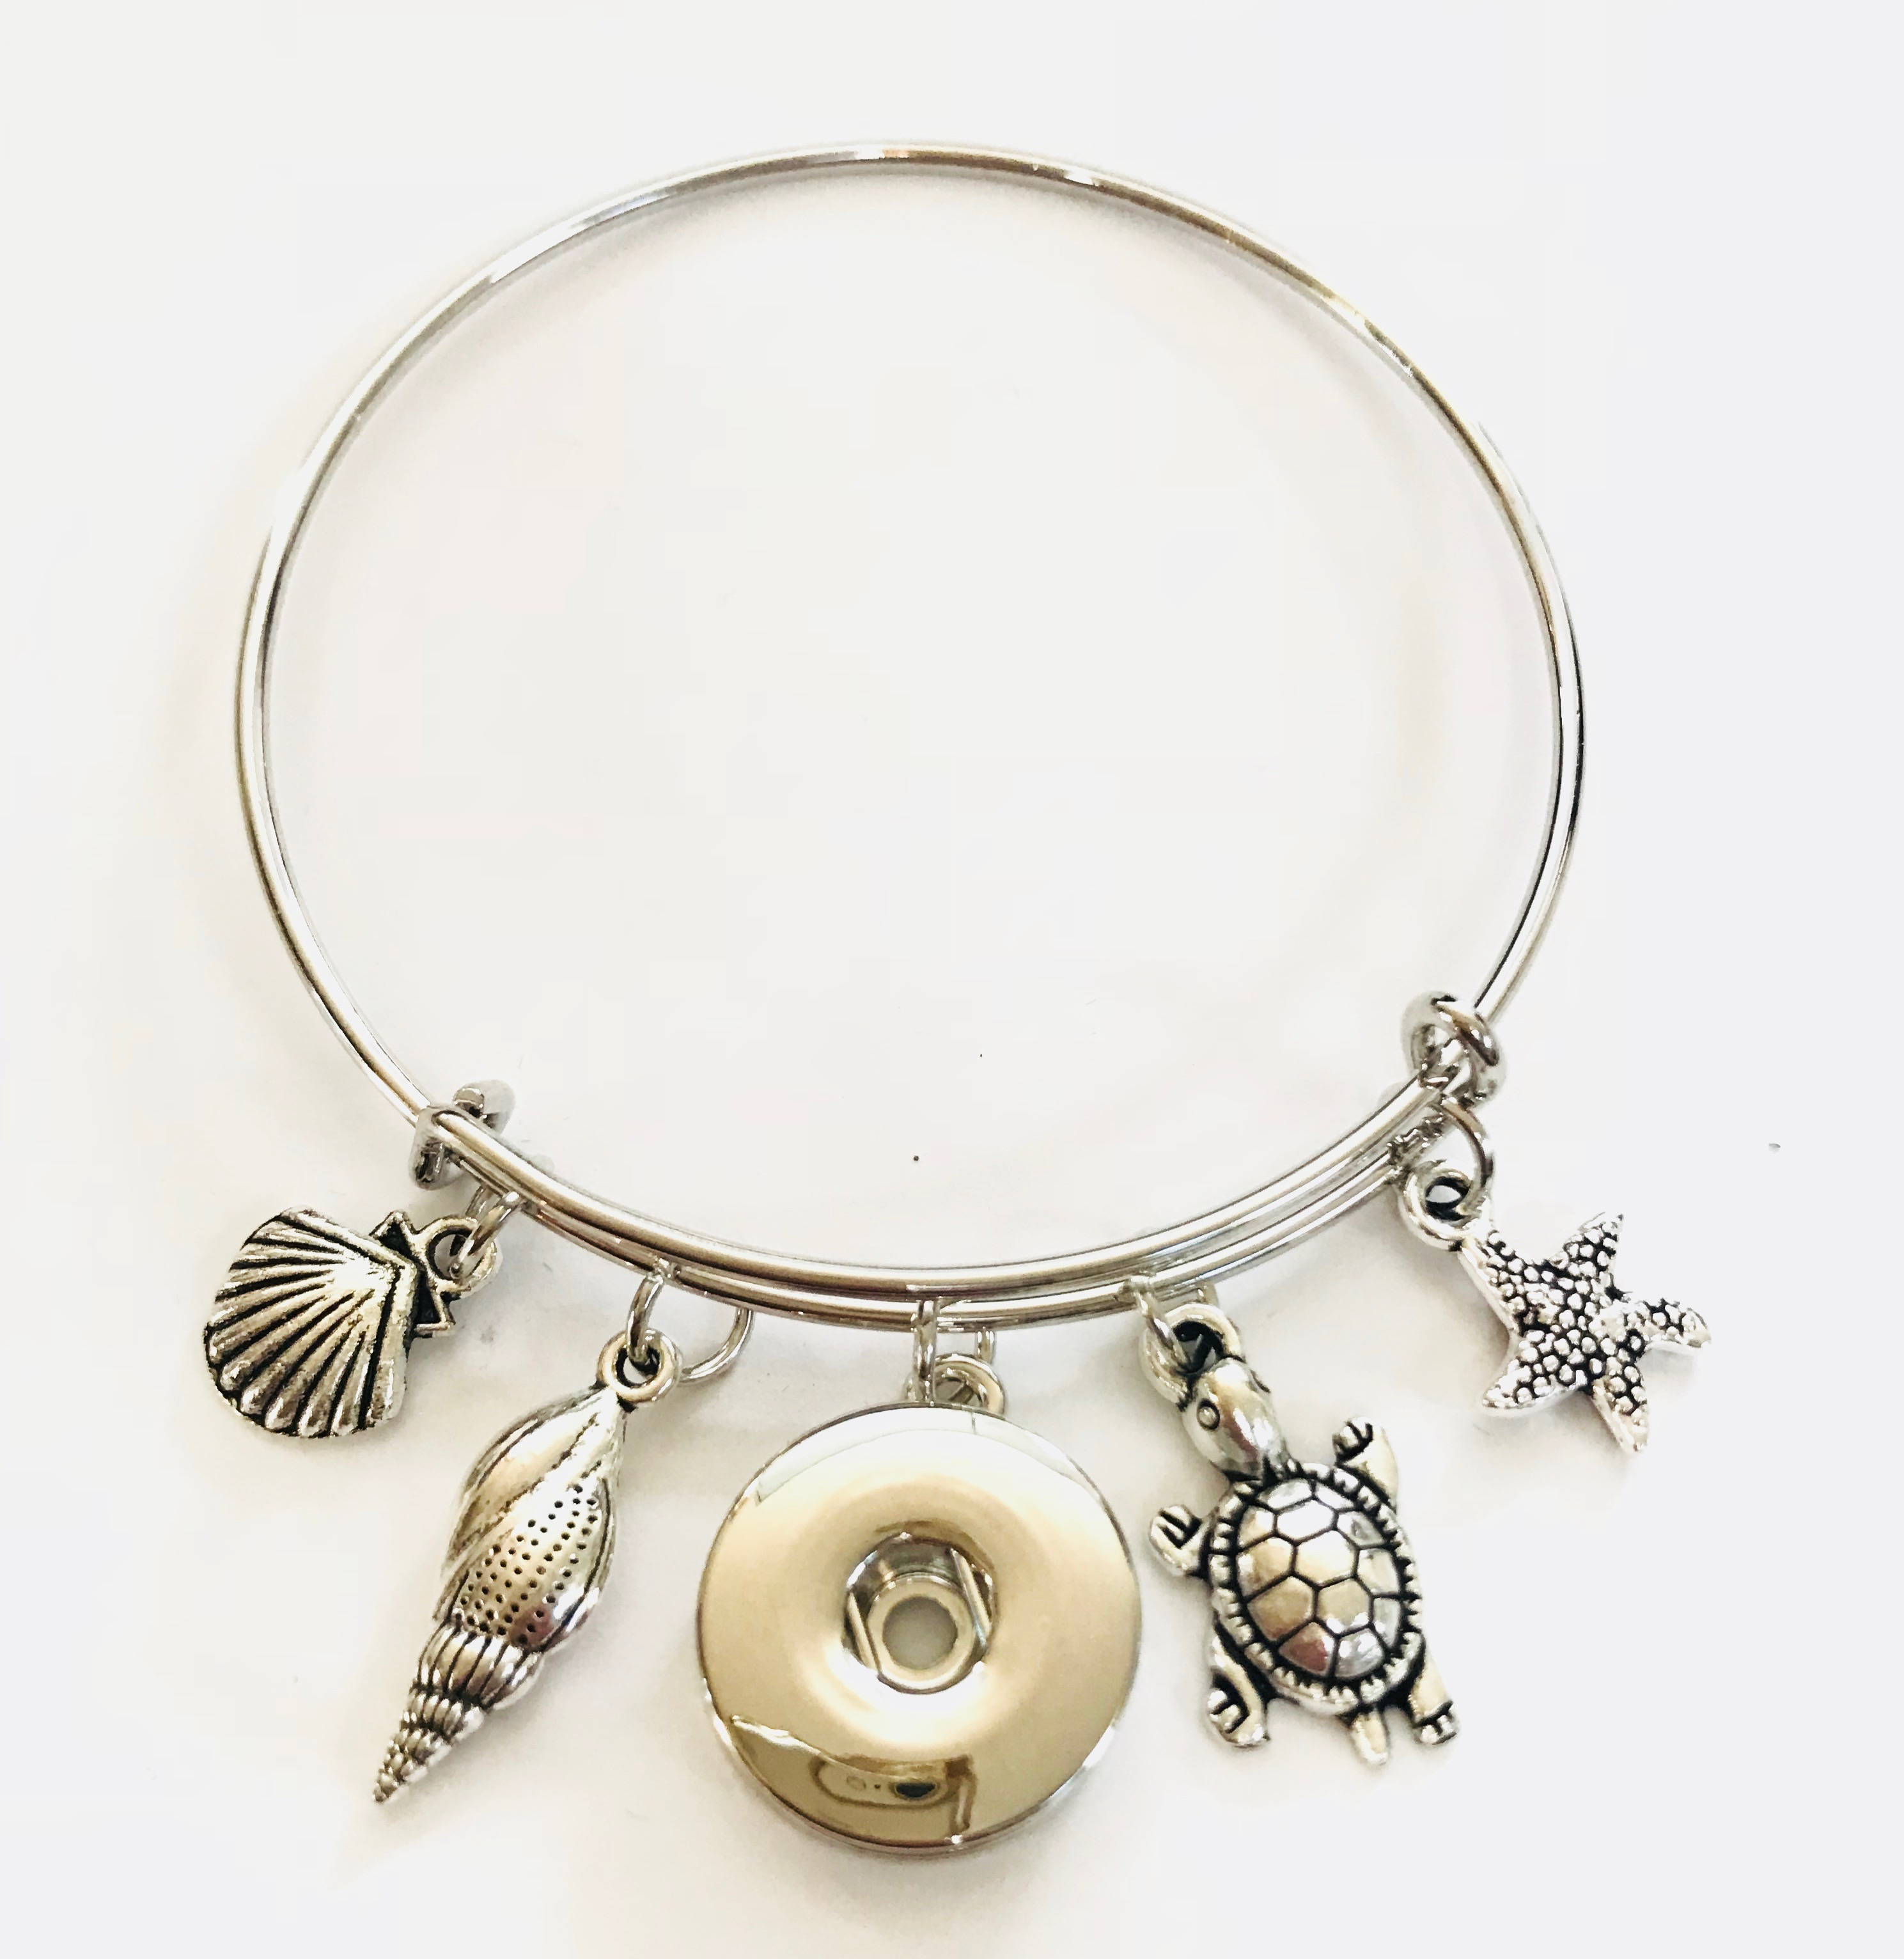 Snap Jewelry Wire Expandable Bangle - Turtle, Shells & Starfish